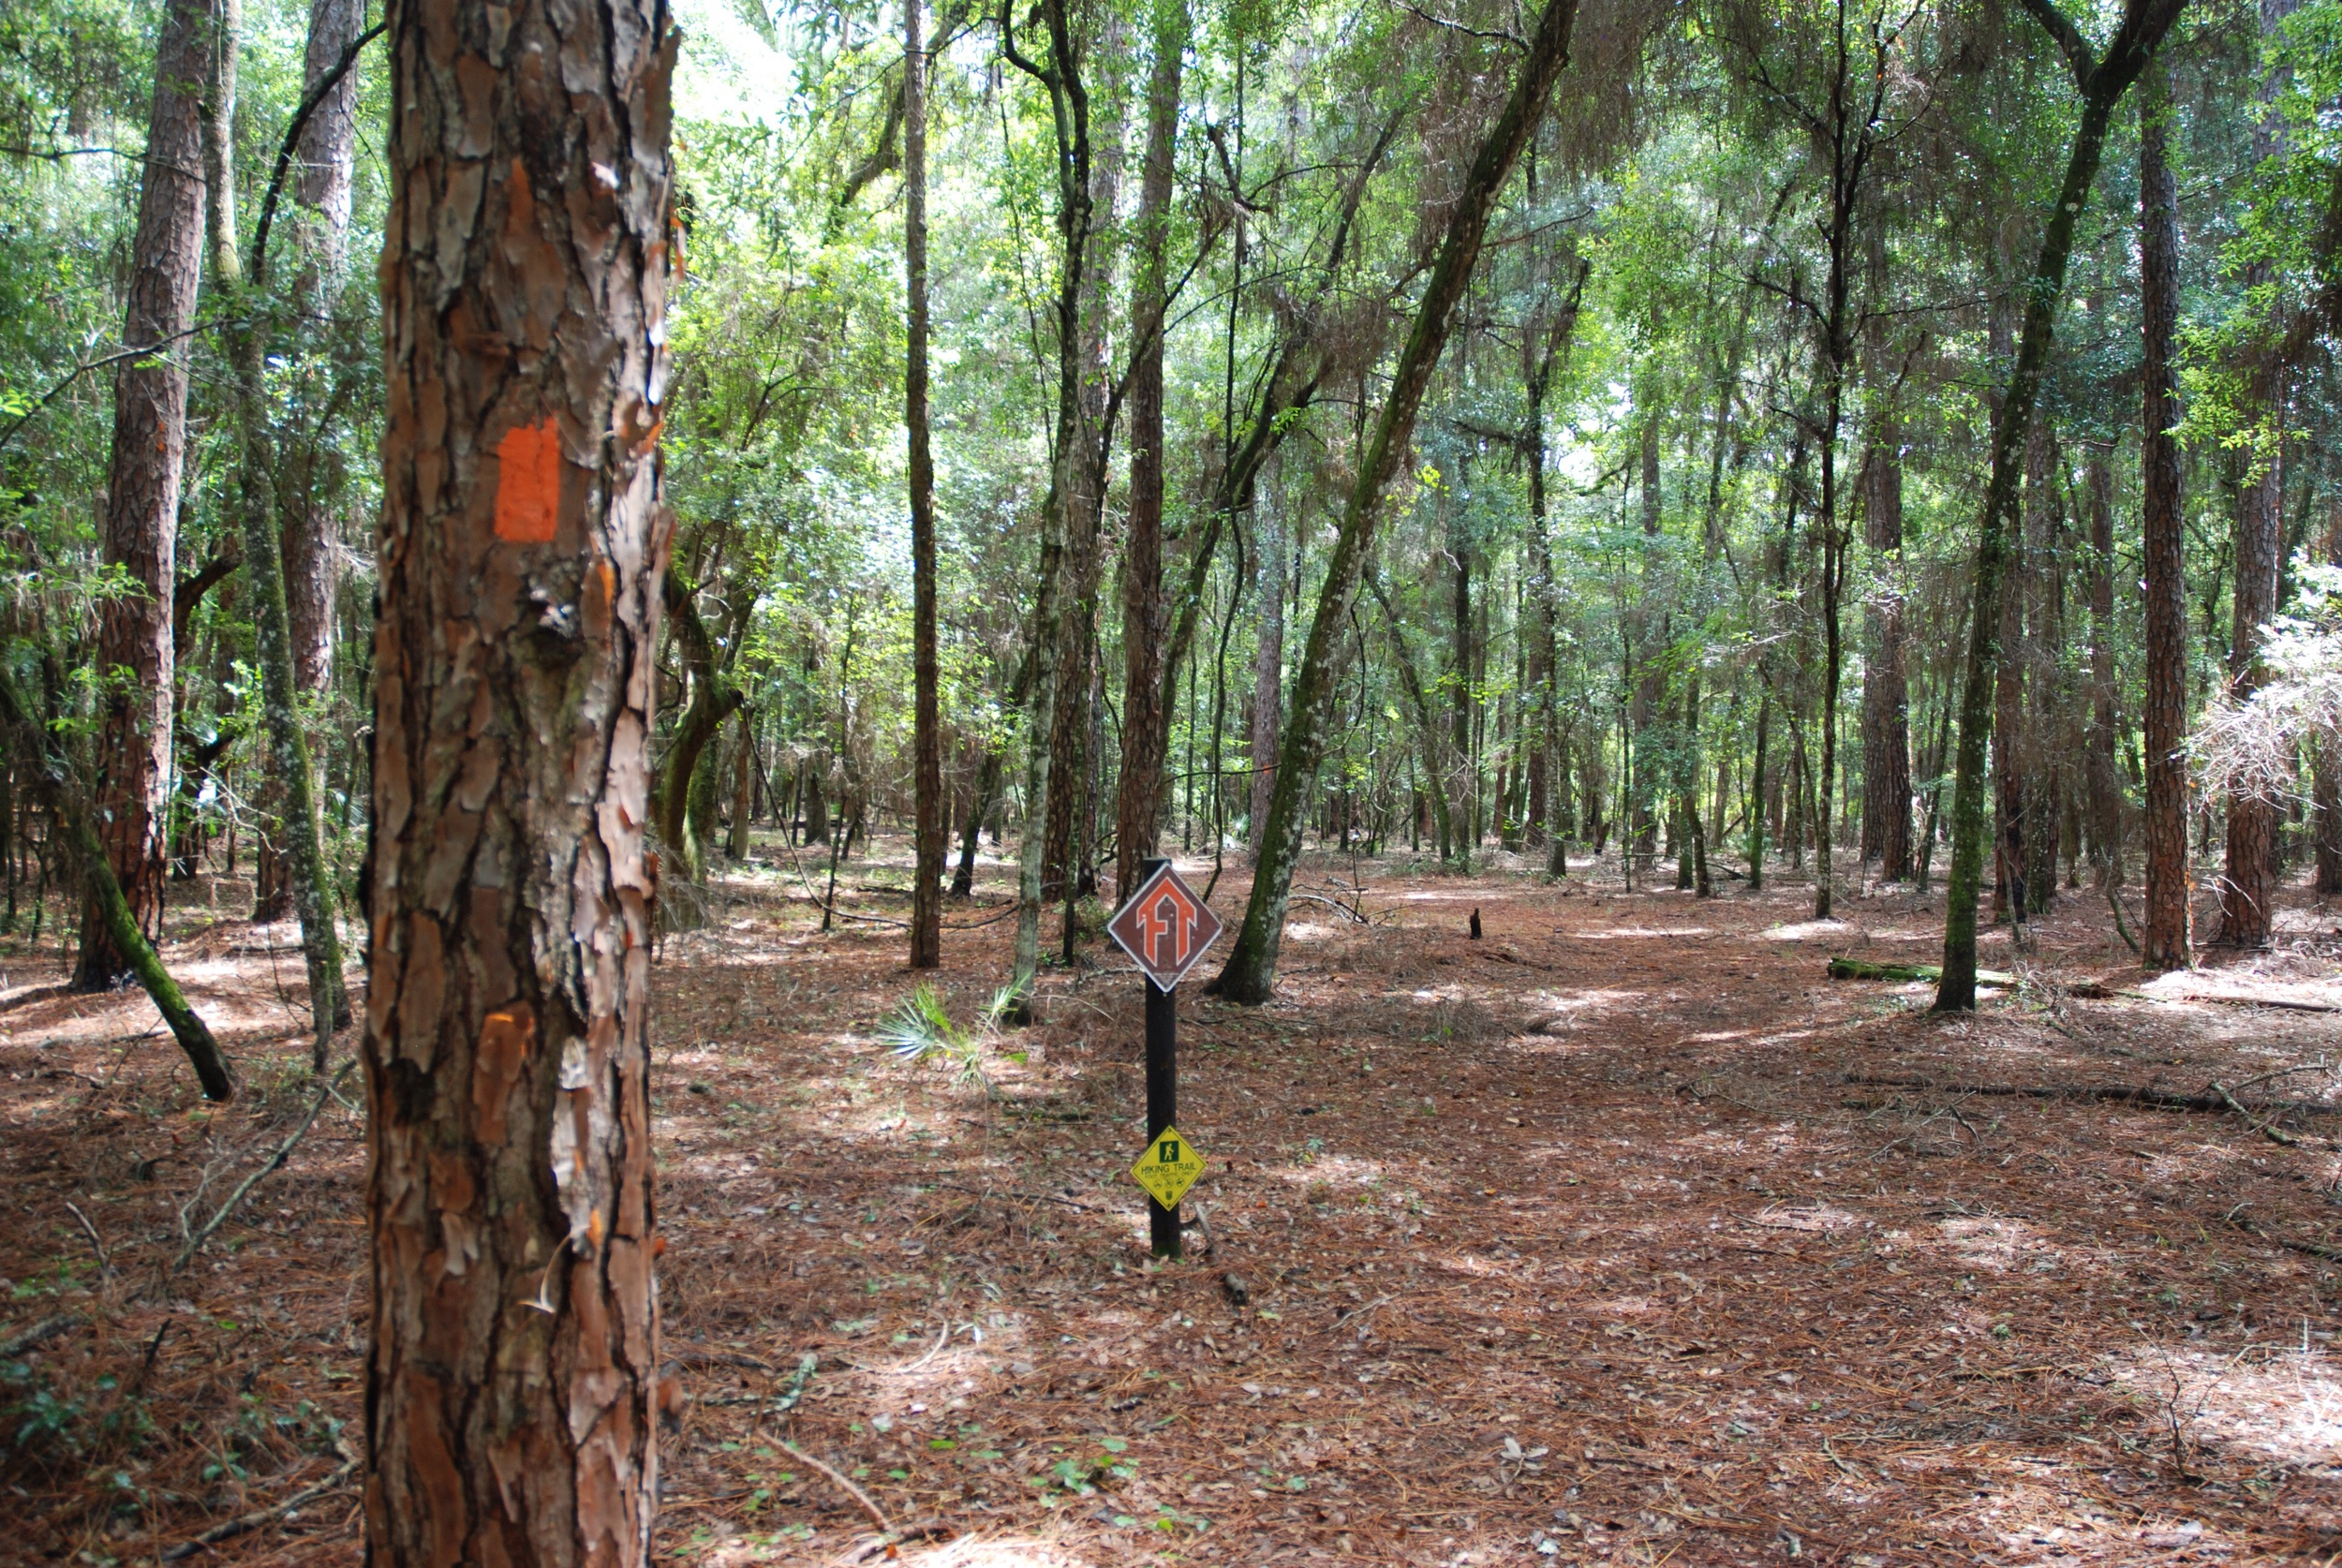 The FT, Florida Trail.